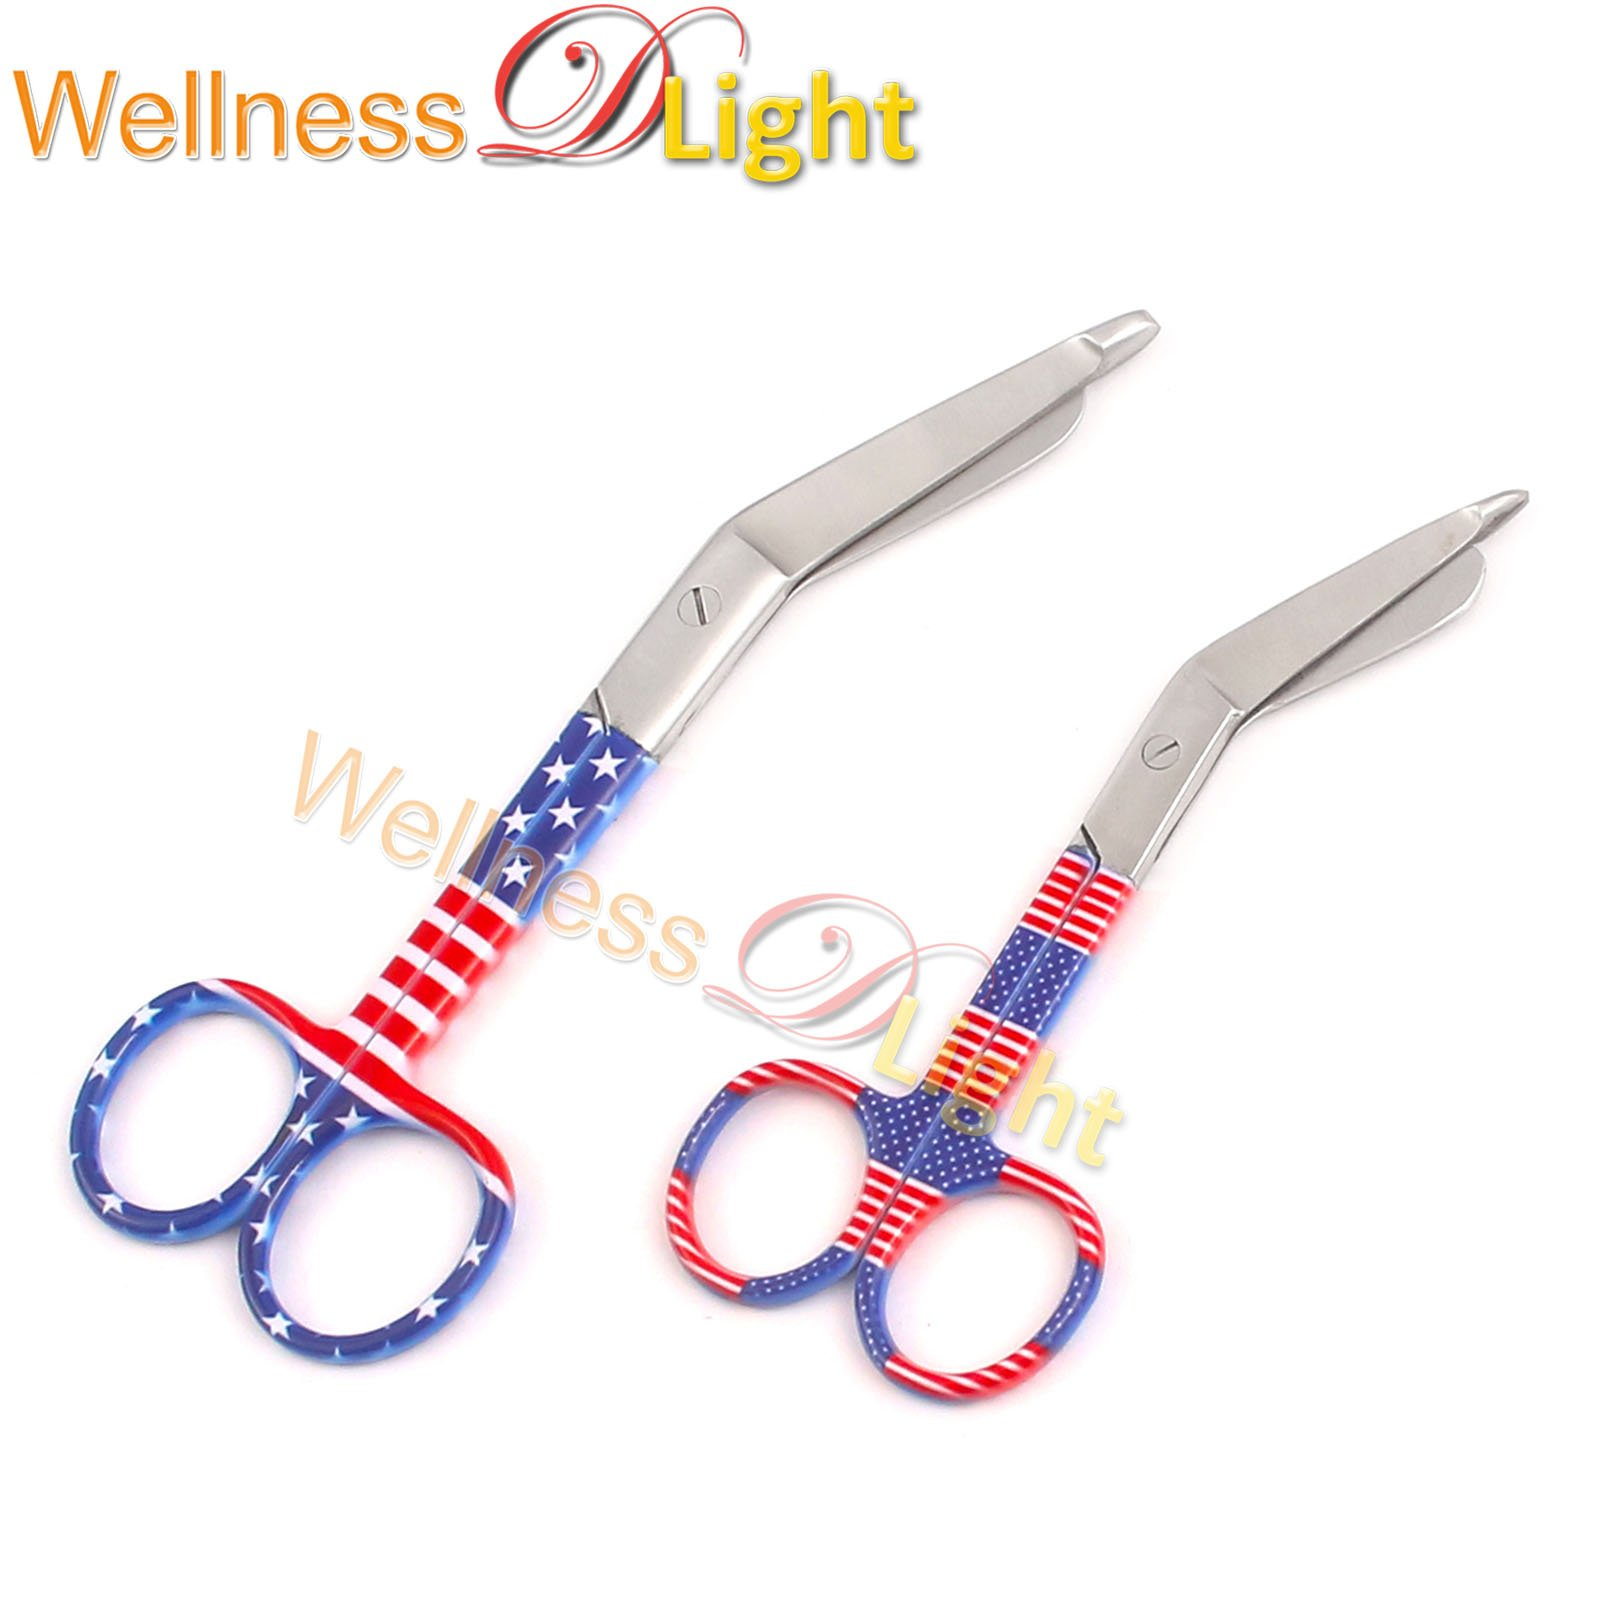 Wdl 2 Pcs Lister Bandage Nurse Scissors 4.5''+5.5'' American Flag Pattern by WellnessD'Light